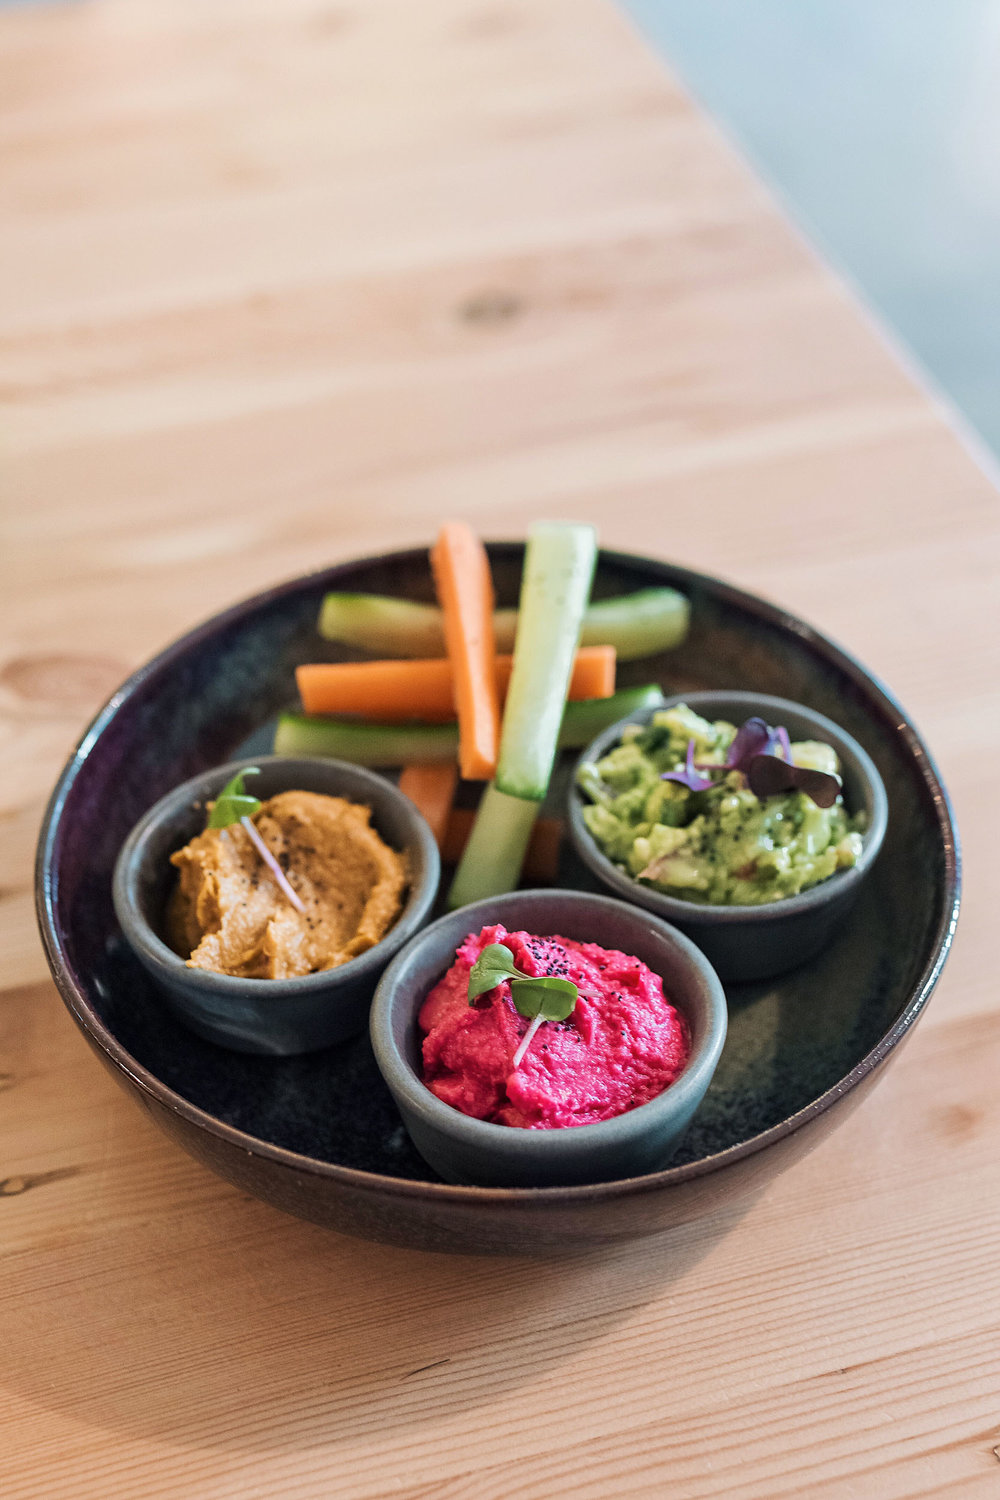 Veggie fingers at Fauna & Flora in Lisbon. The perfect spot to grab a healthy snack!